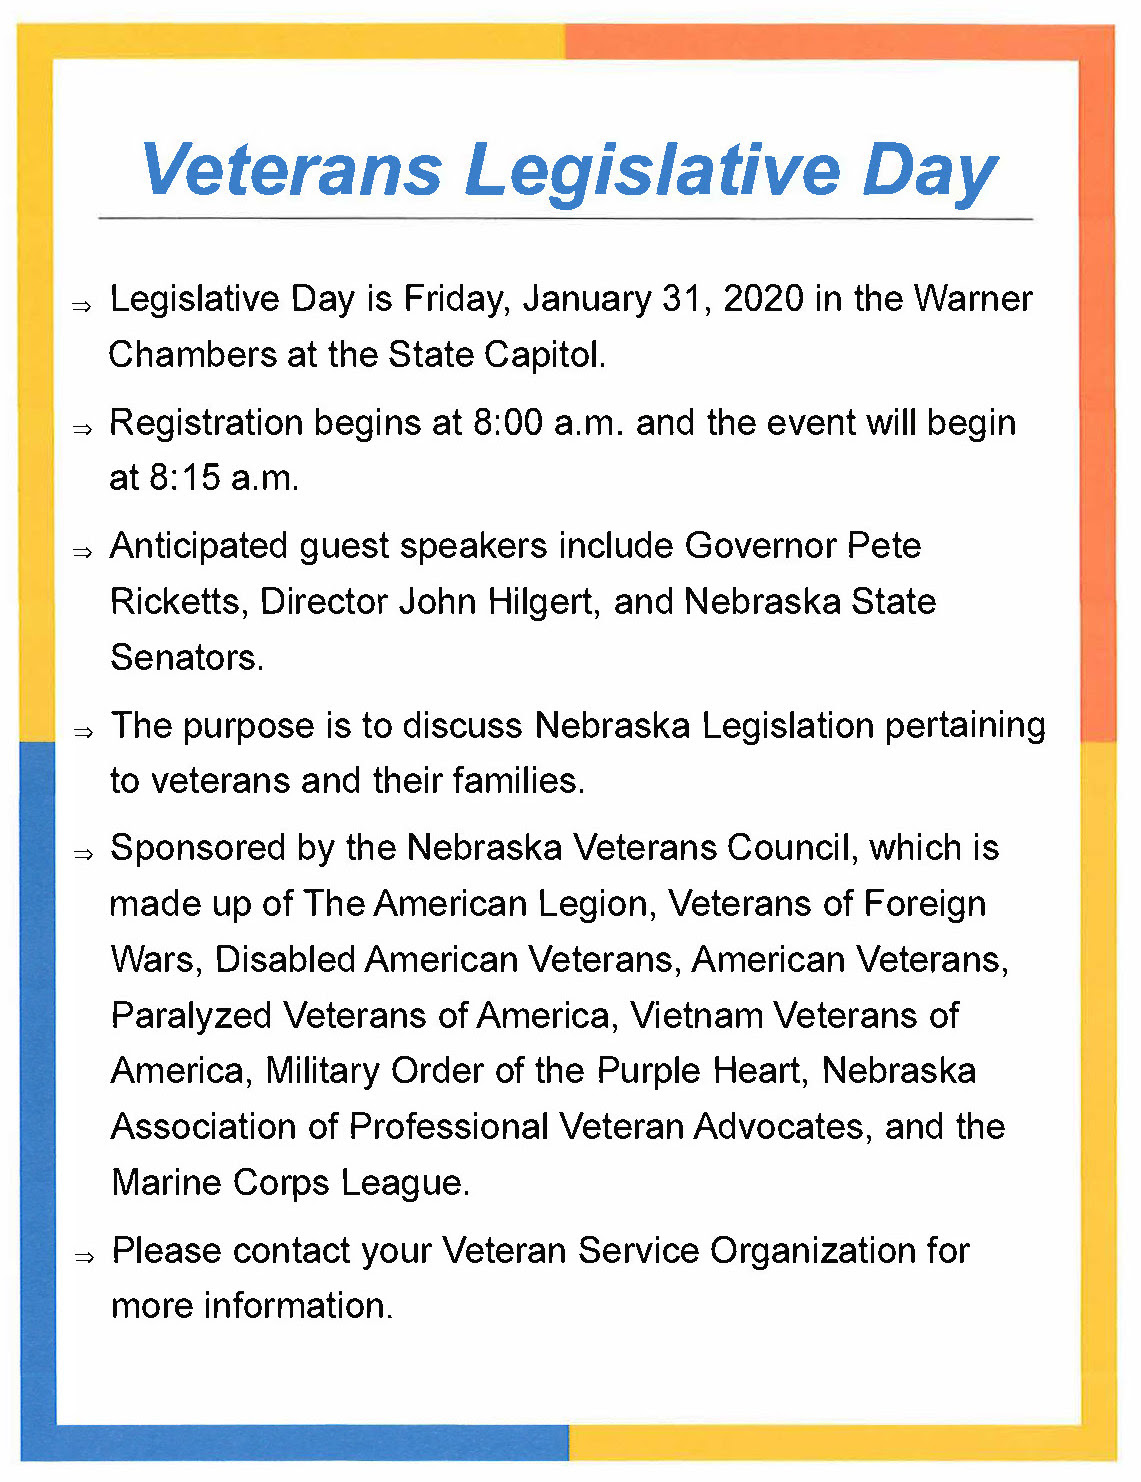 Veterans Legislative Day Flyer